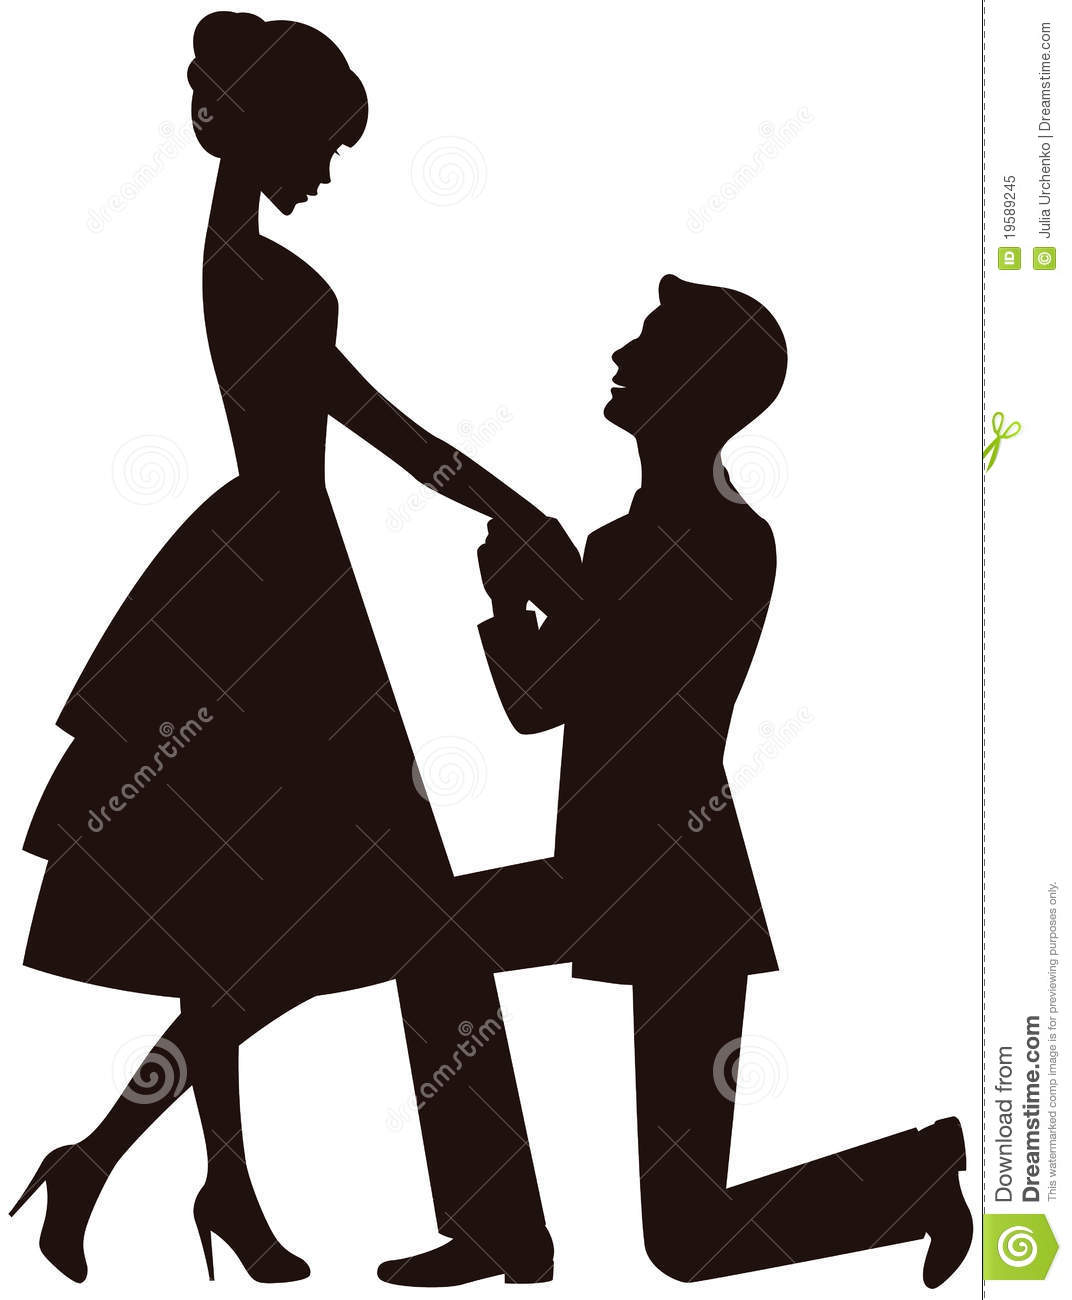 Marriage Proposal Royalty Free Stock Photo   Image  19589245